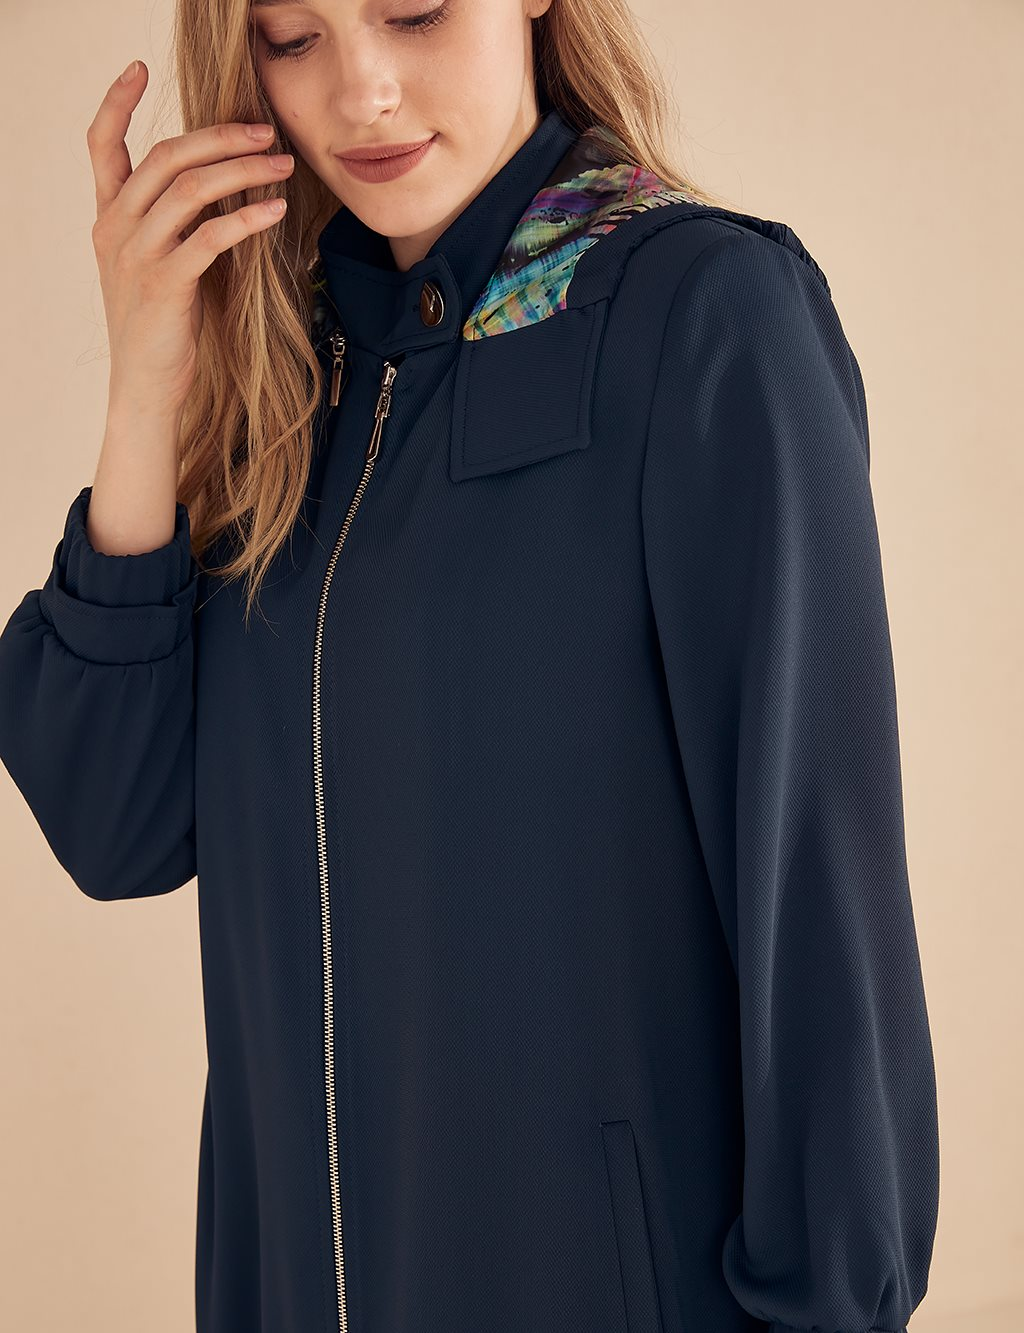 Overcoat With Colorful Hood B20 15042 Navy